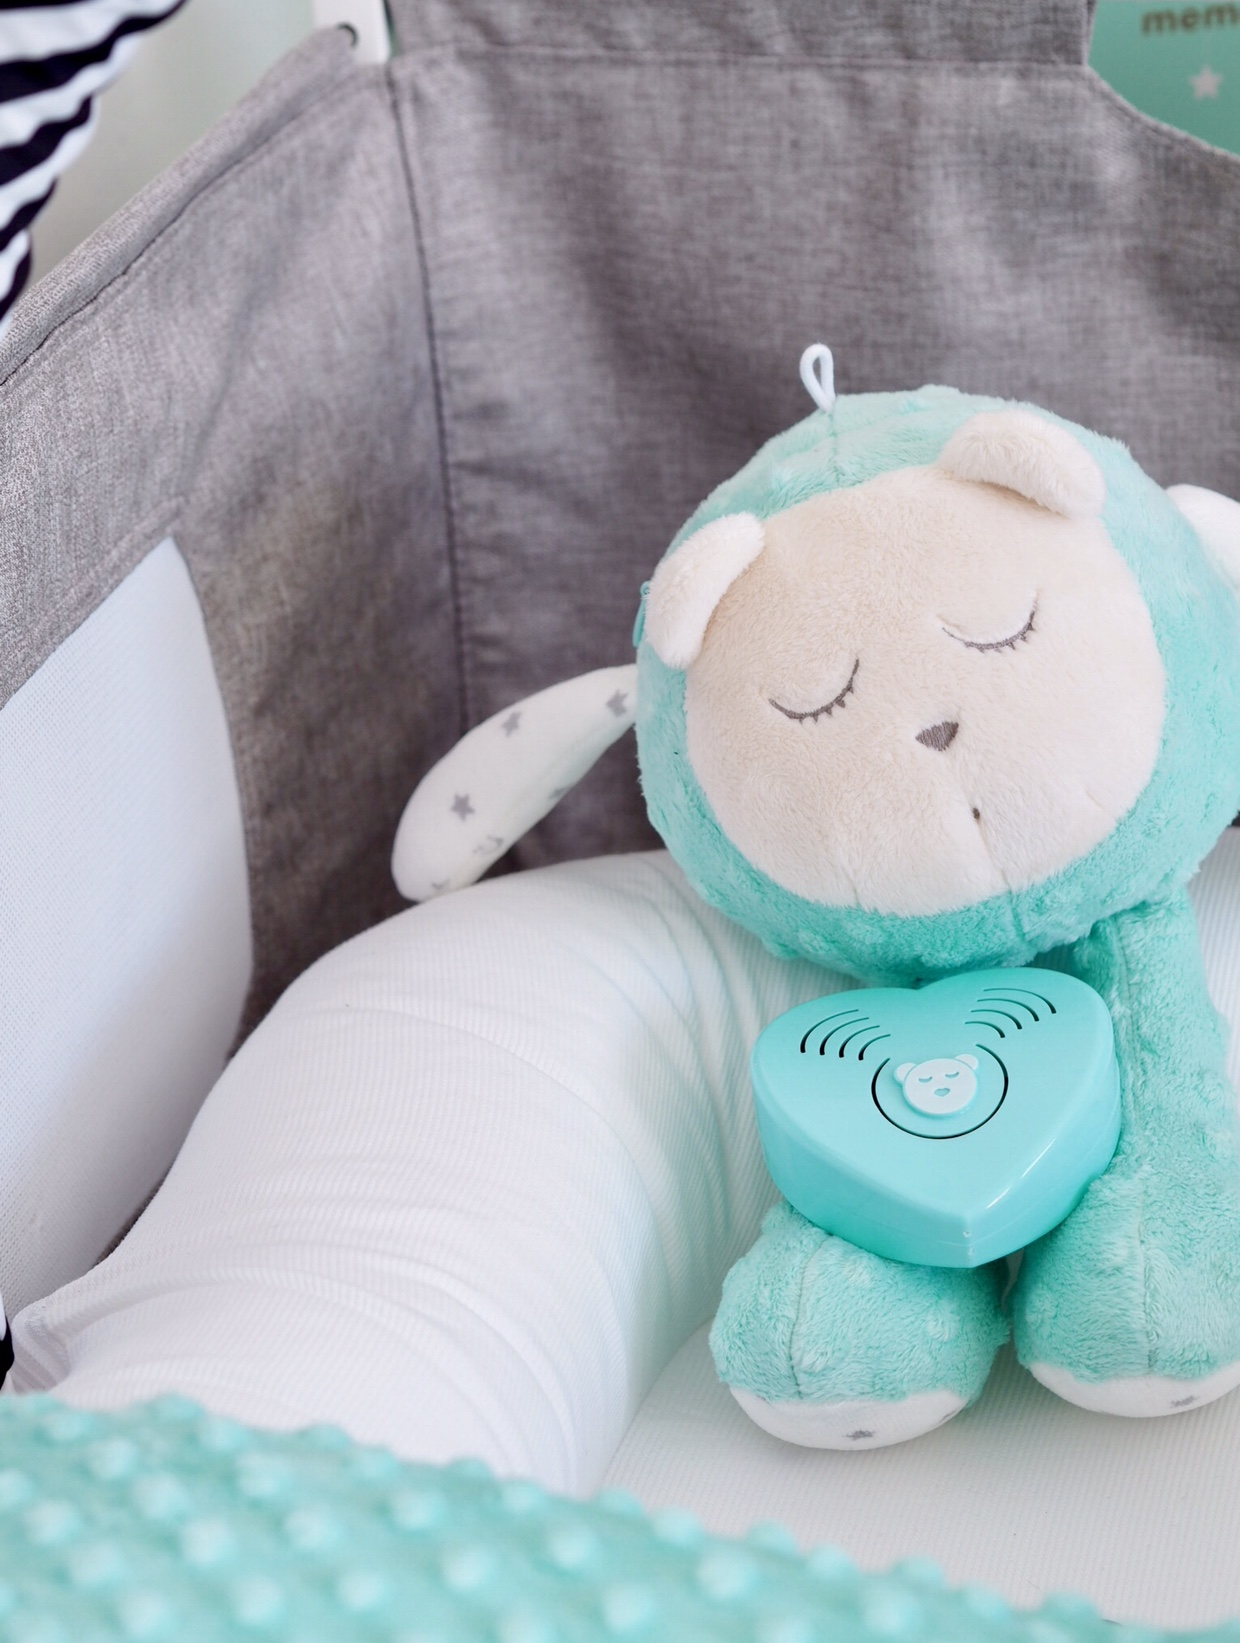 My Hummy Snoozy White Noise Toy Baby Sleep